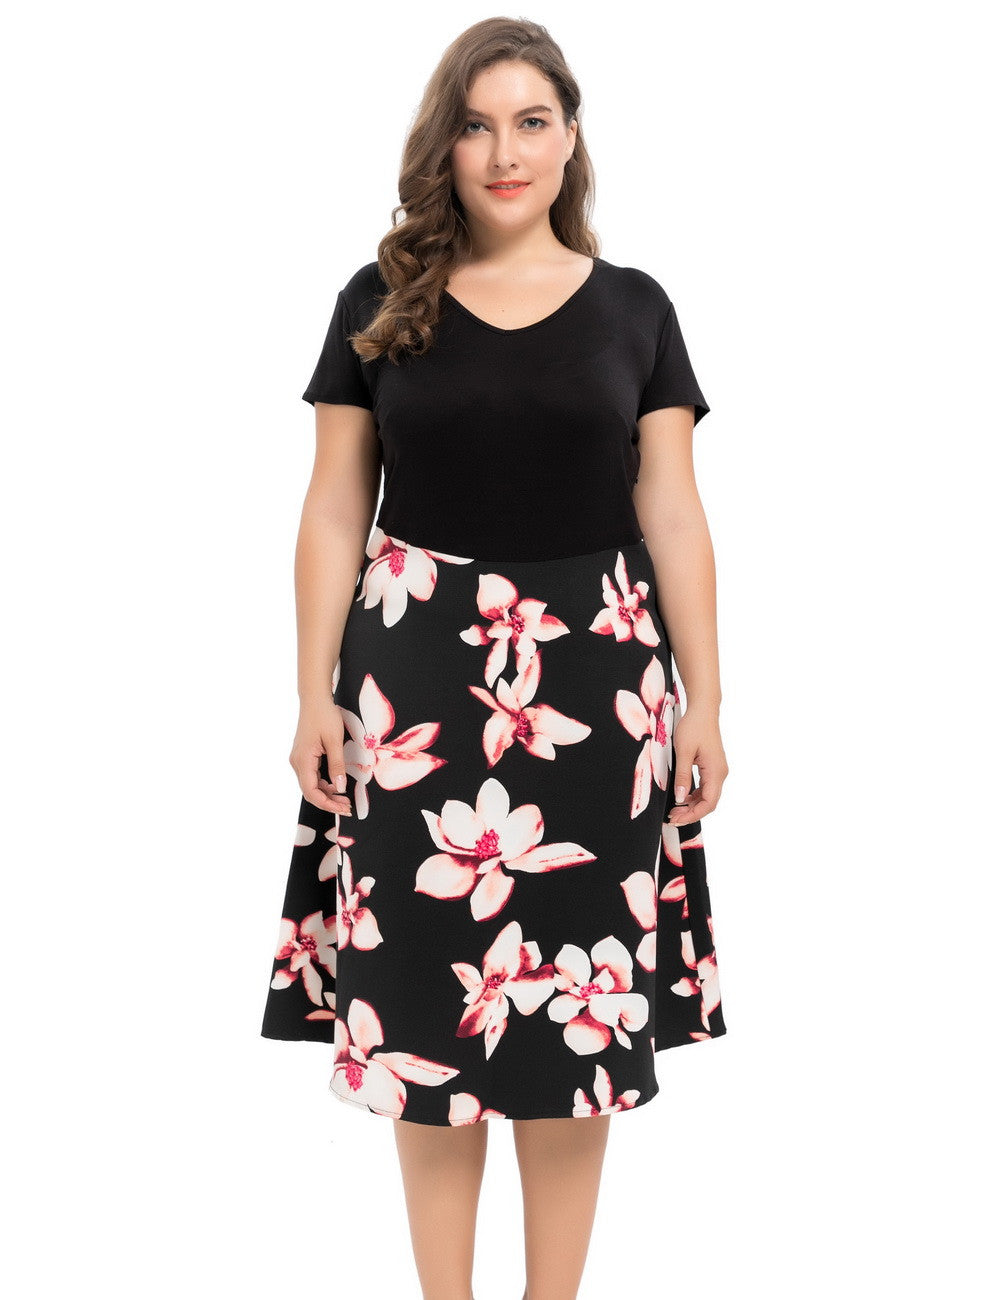 Chicwe Women's Vintage Style Plus Size Floral Printed Dress 1X-4X